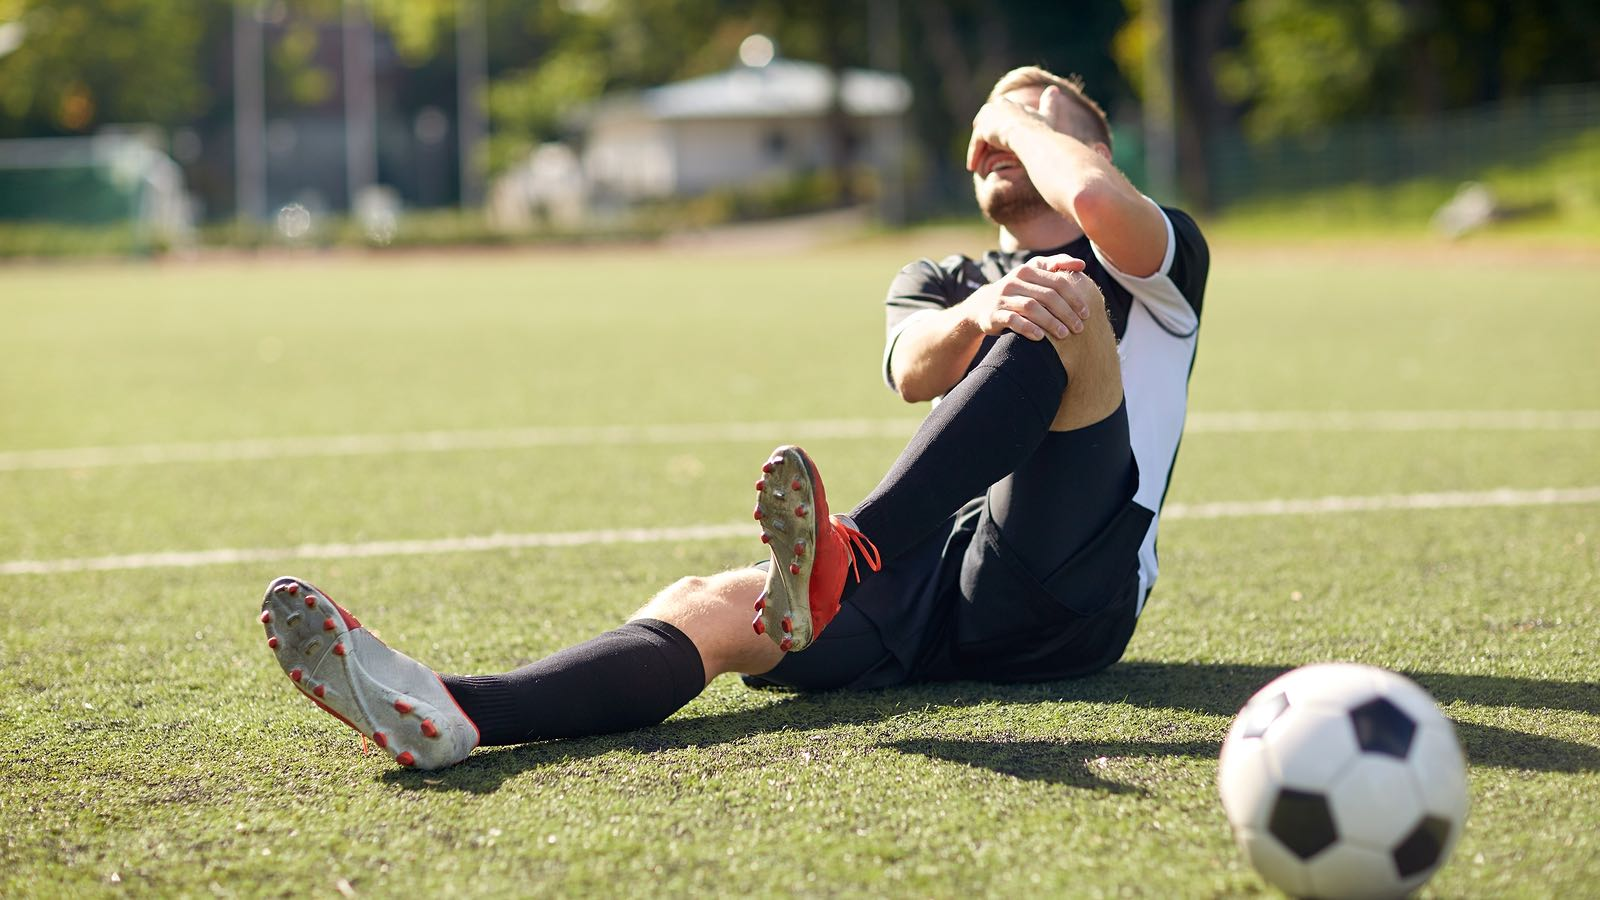 Knee Assessment and Hip Mechanics : Learn how hip and pelvis mechanics can influence the knee